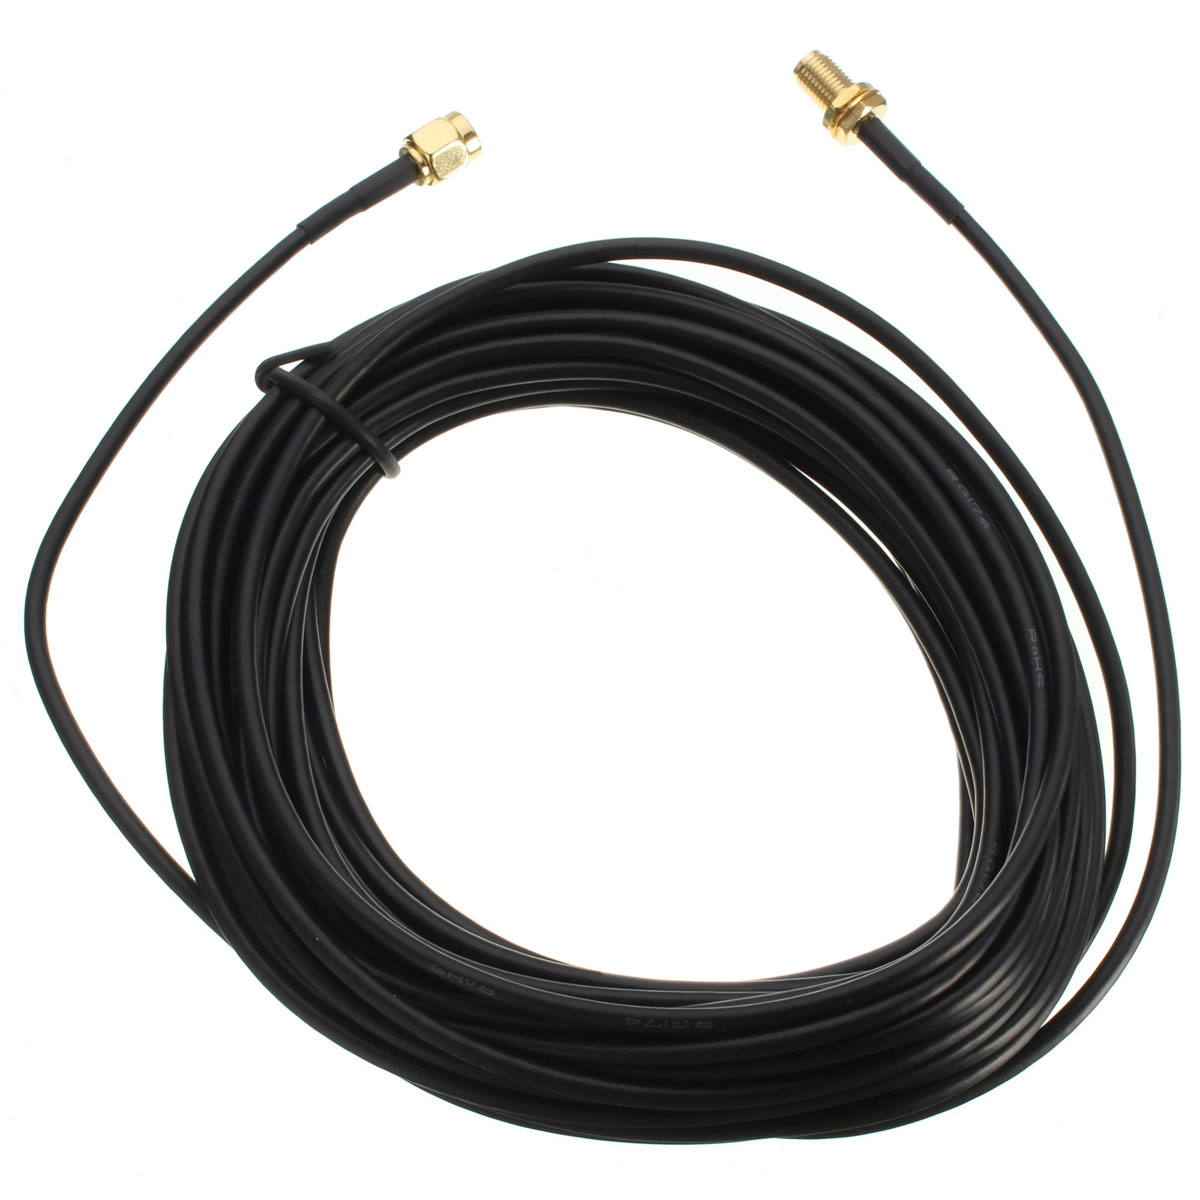 RG174 1M/5M RP-SMA Male to Female Wifi Antenna Extension Cable for Wireless Network Card Router AP